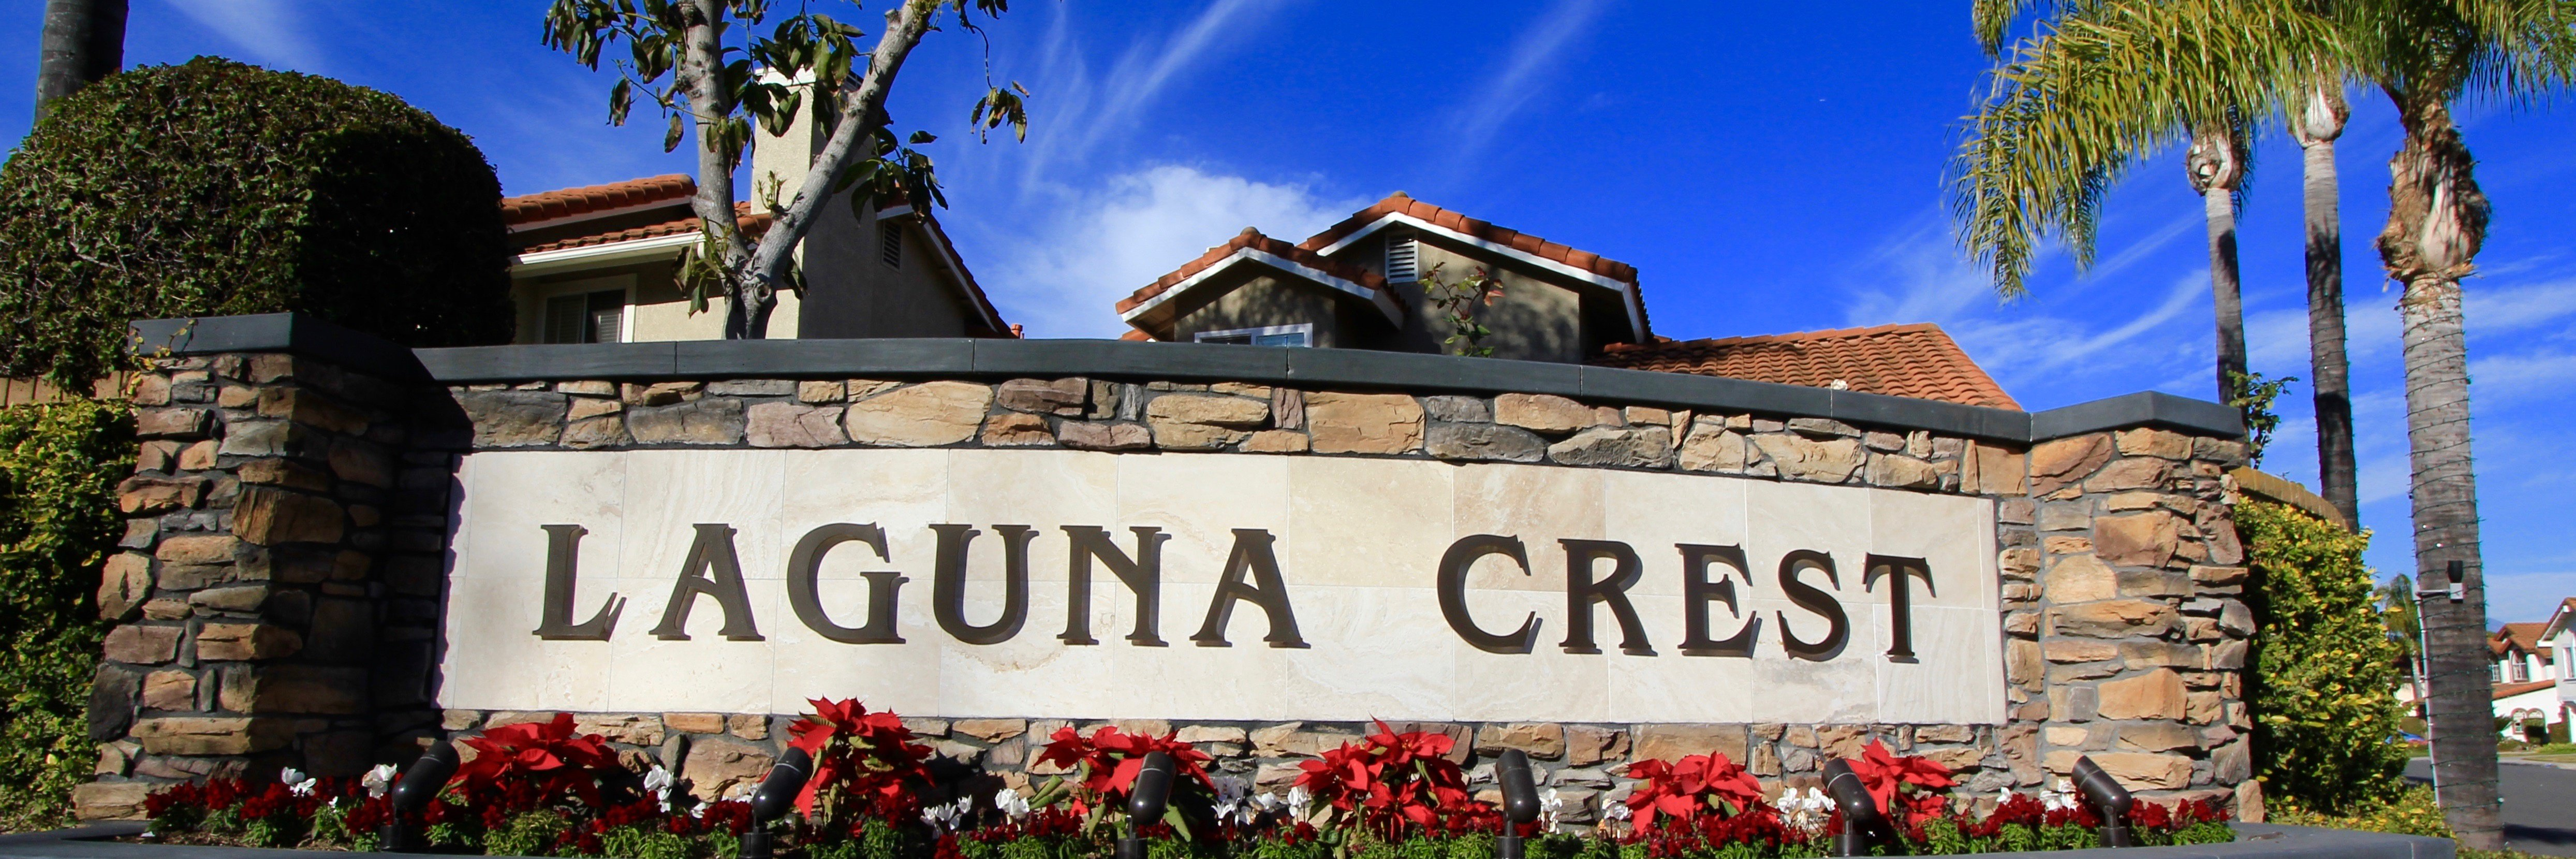 Laguna Crest is a neighborhood of homes located in Laguna Niguel California